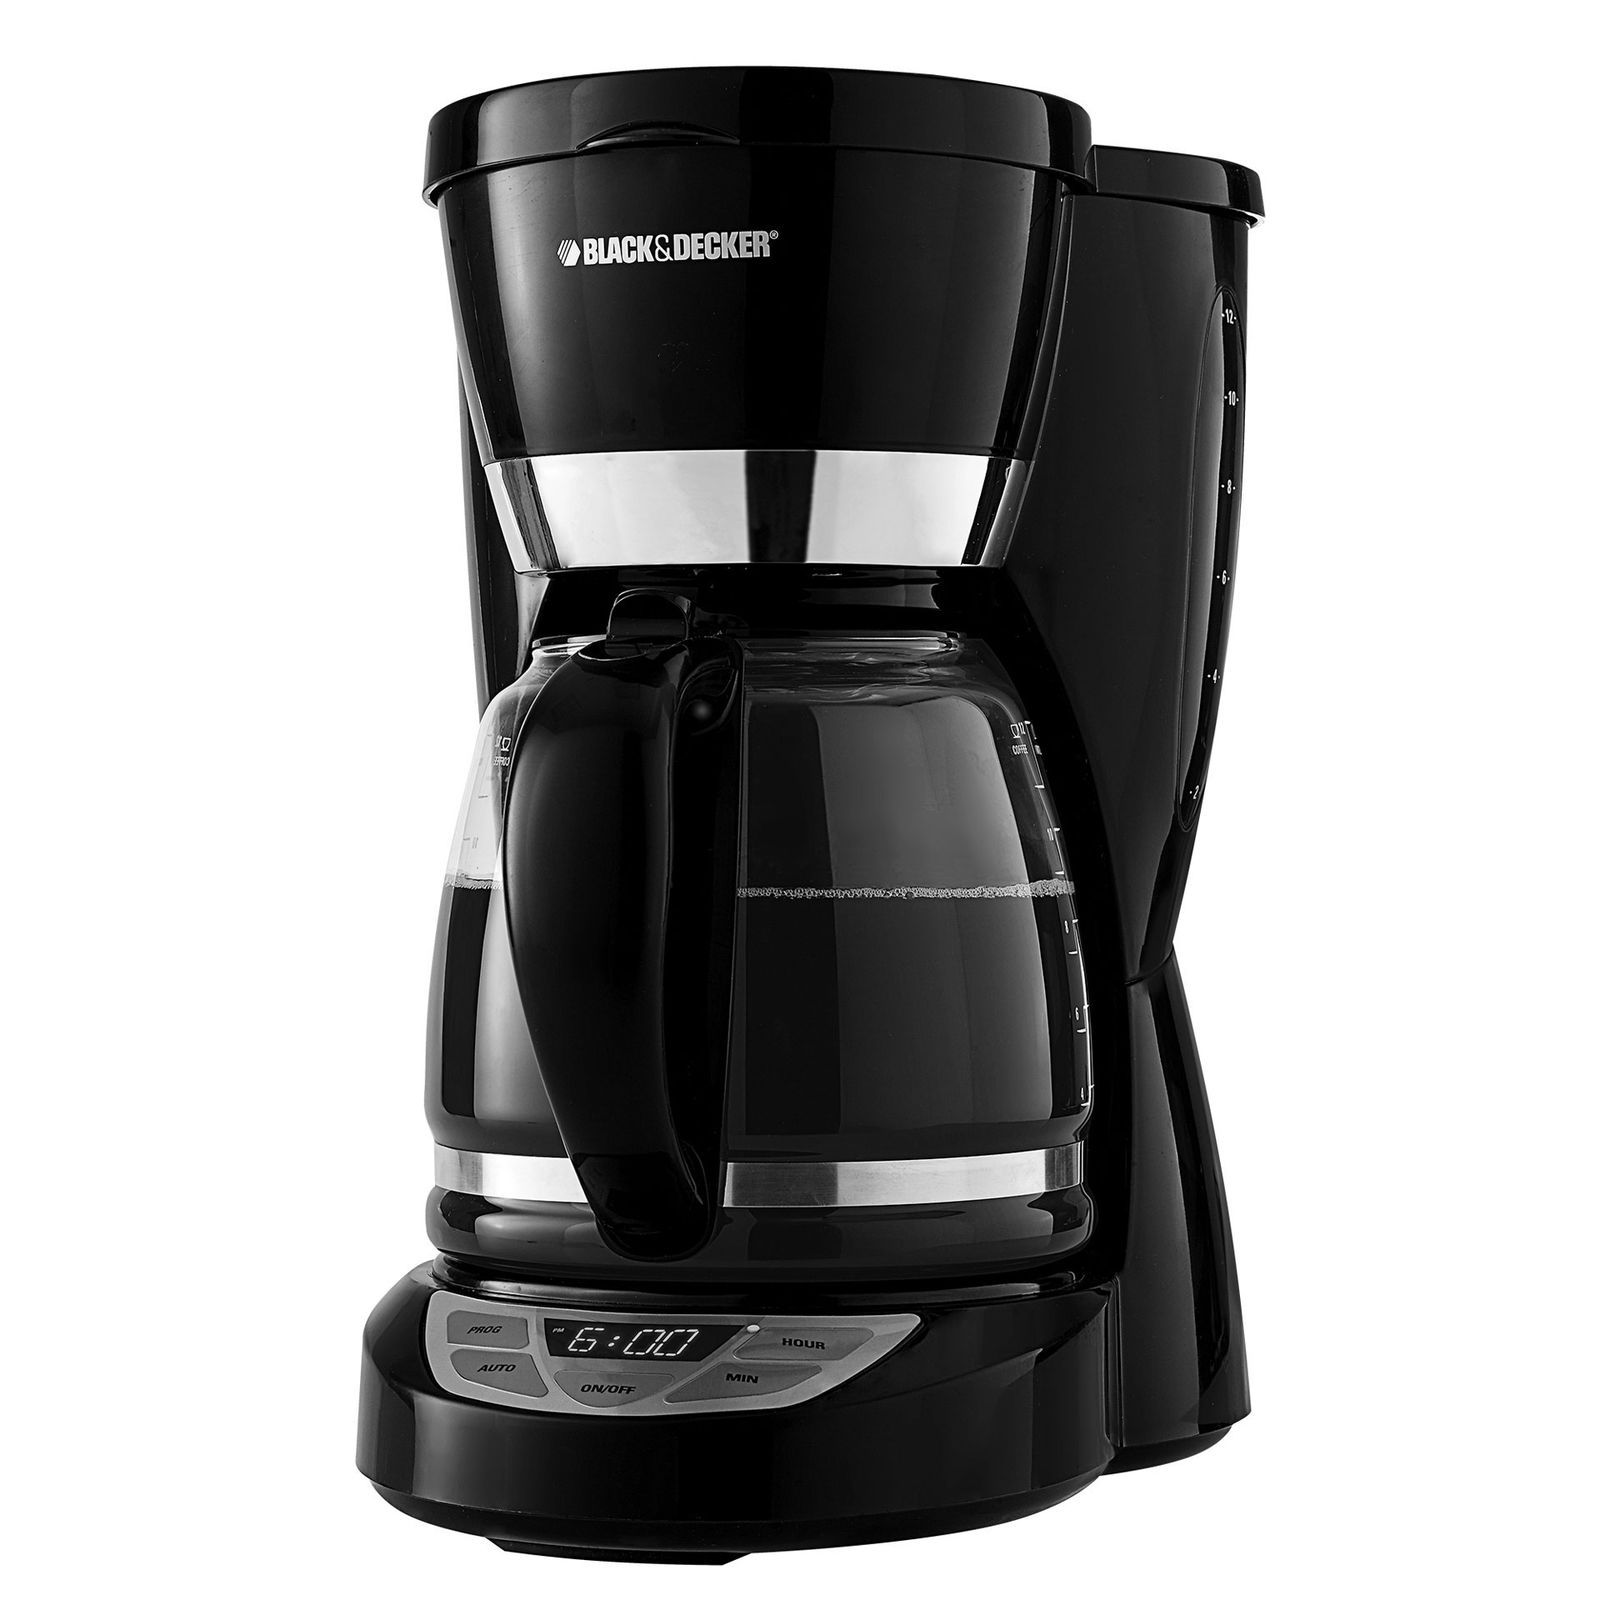 Black u decker cup programmable coffee maker cmb best of